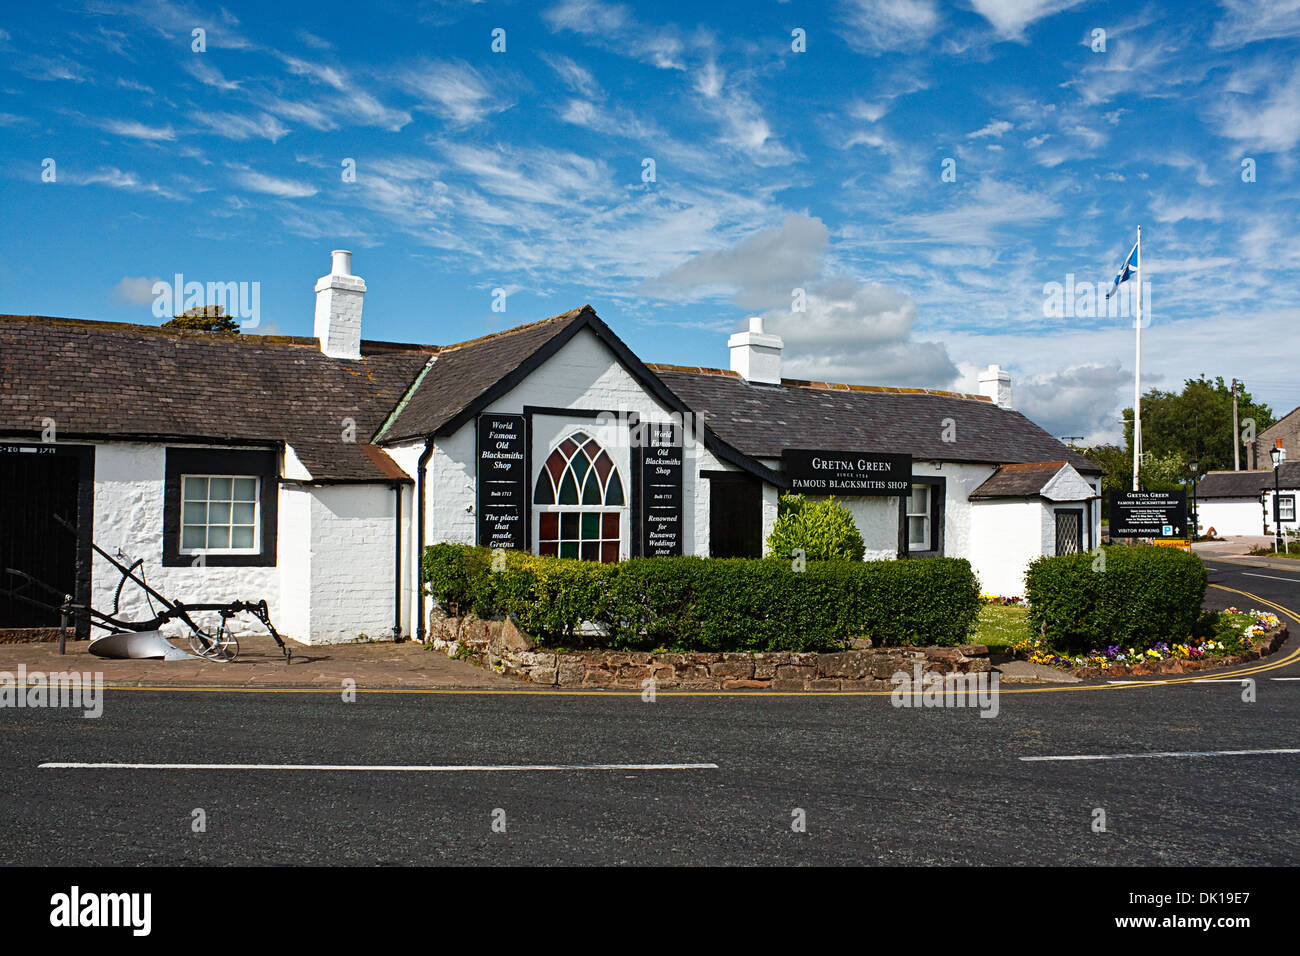 The Old Blacksmith shop Gretna Green - Stock Image